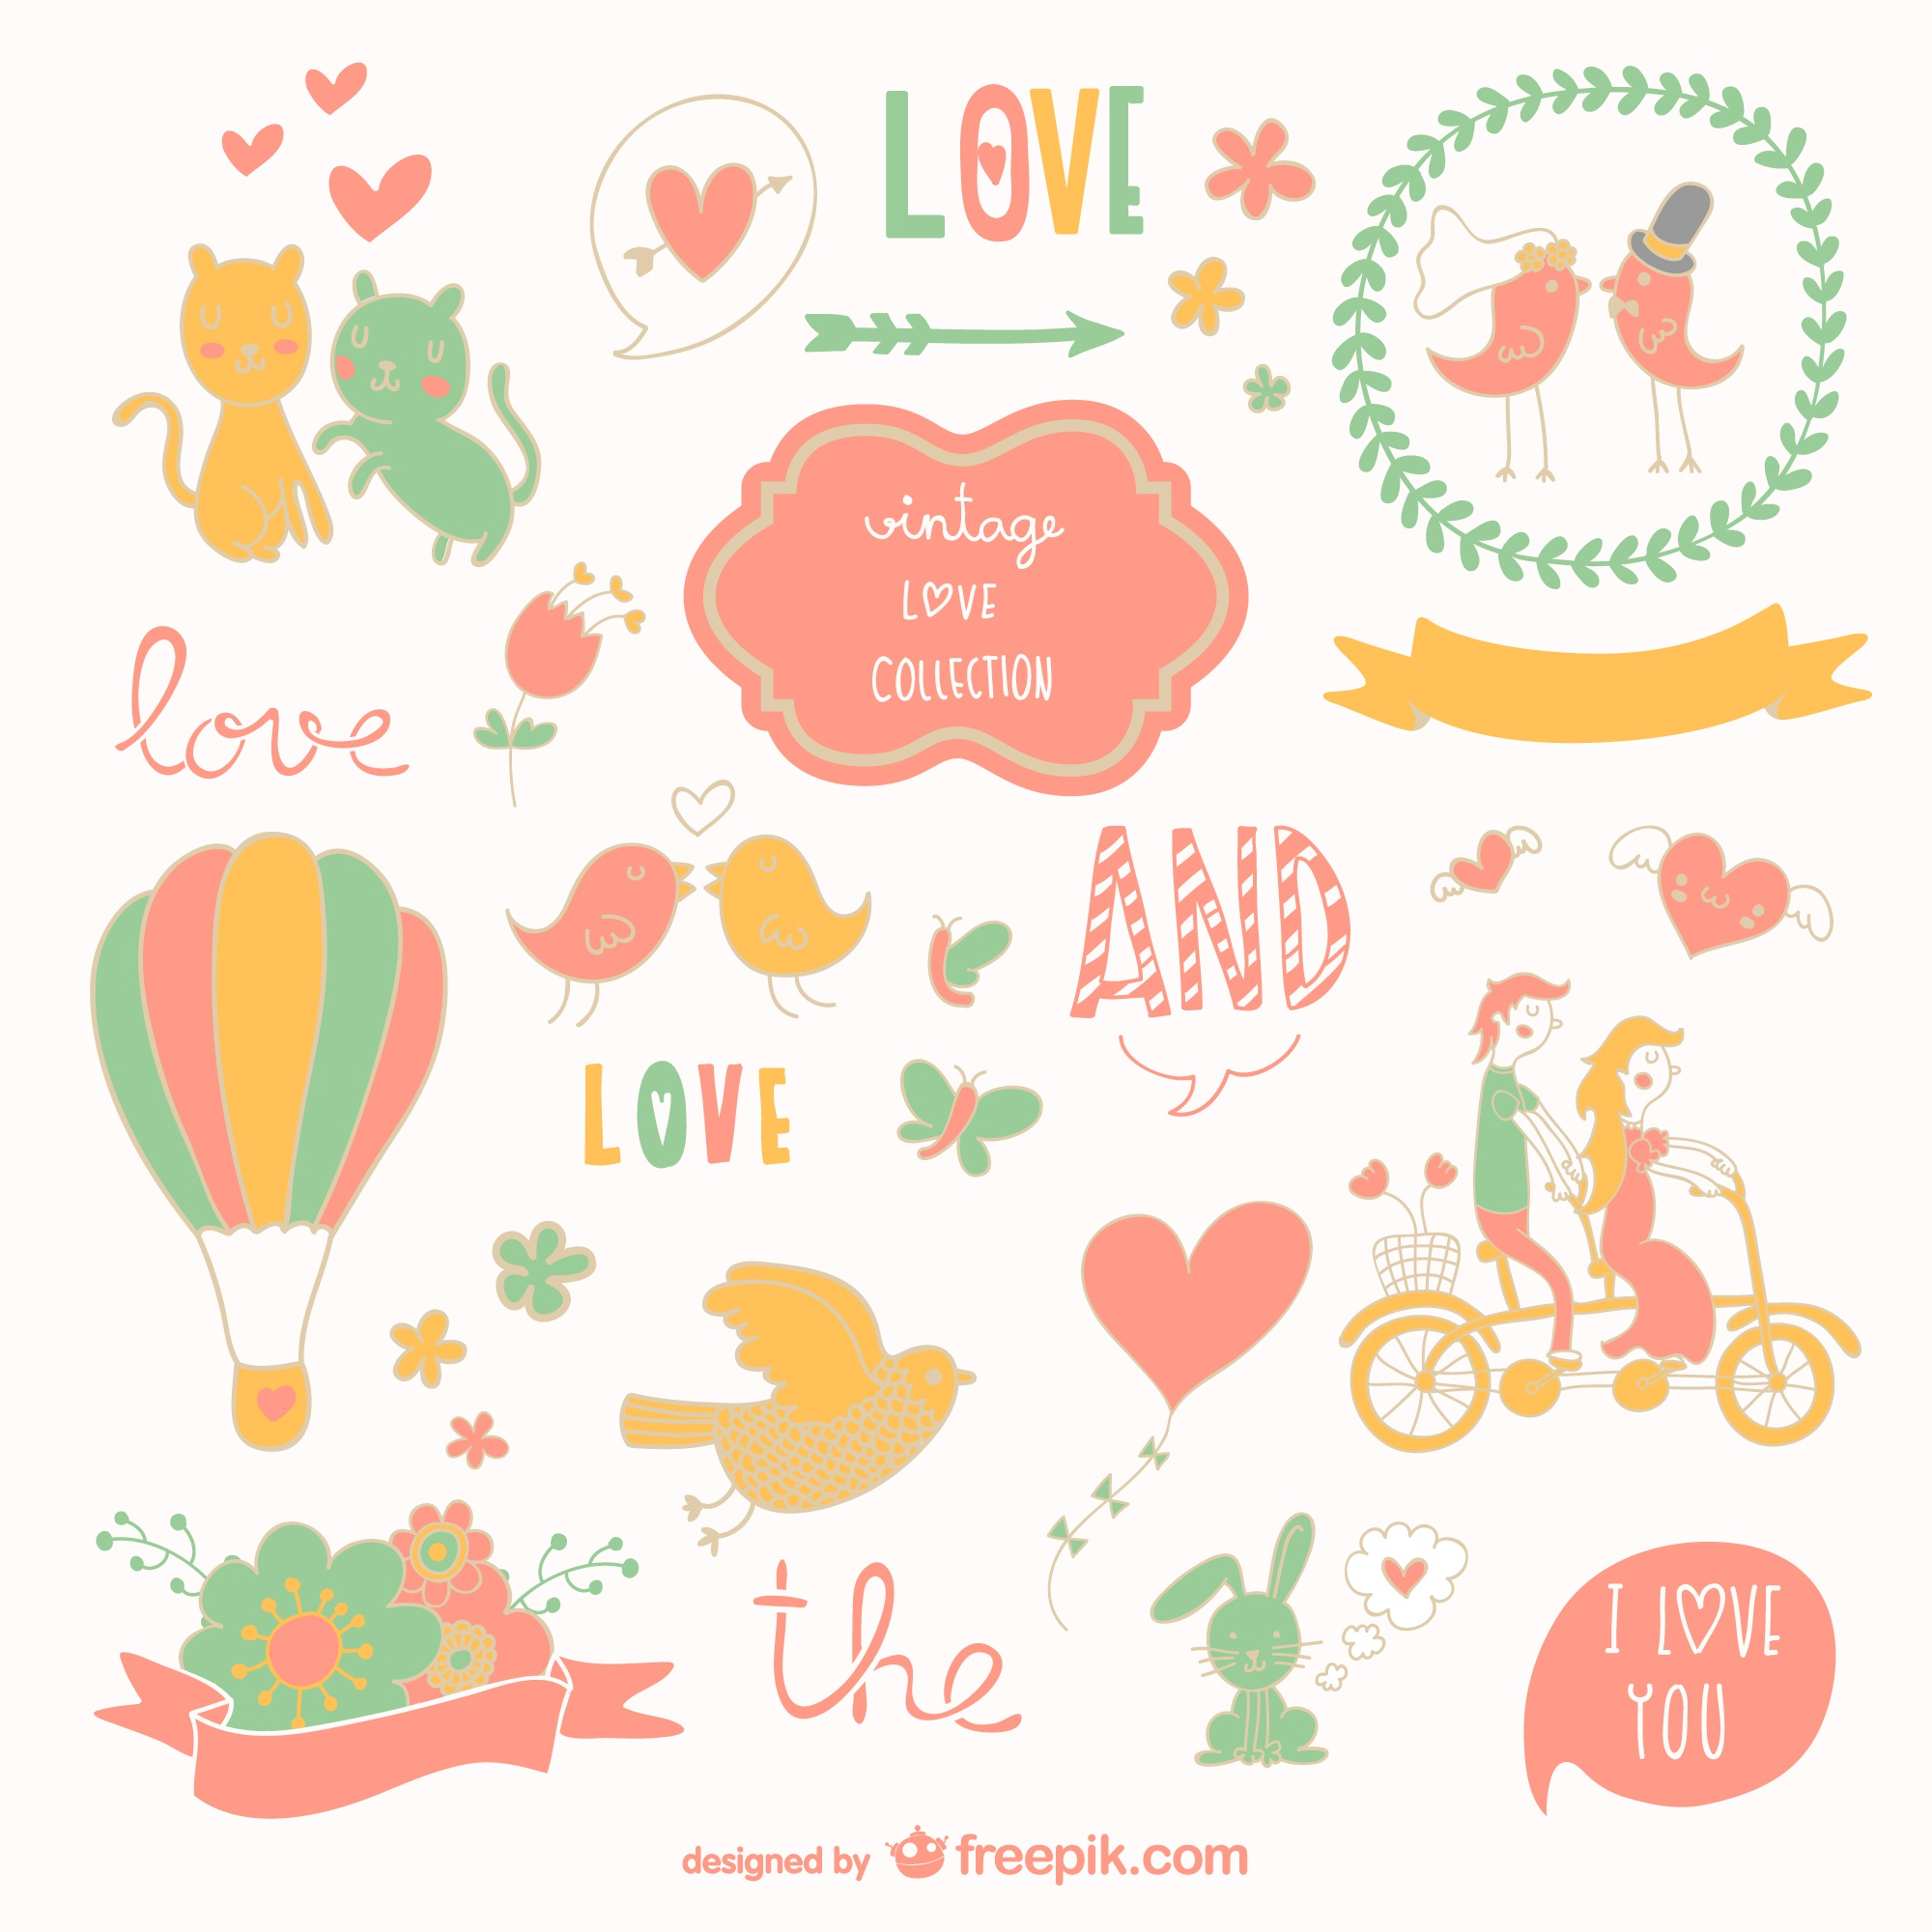 Love vector graphics drawings set